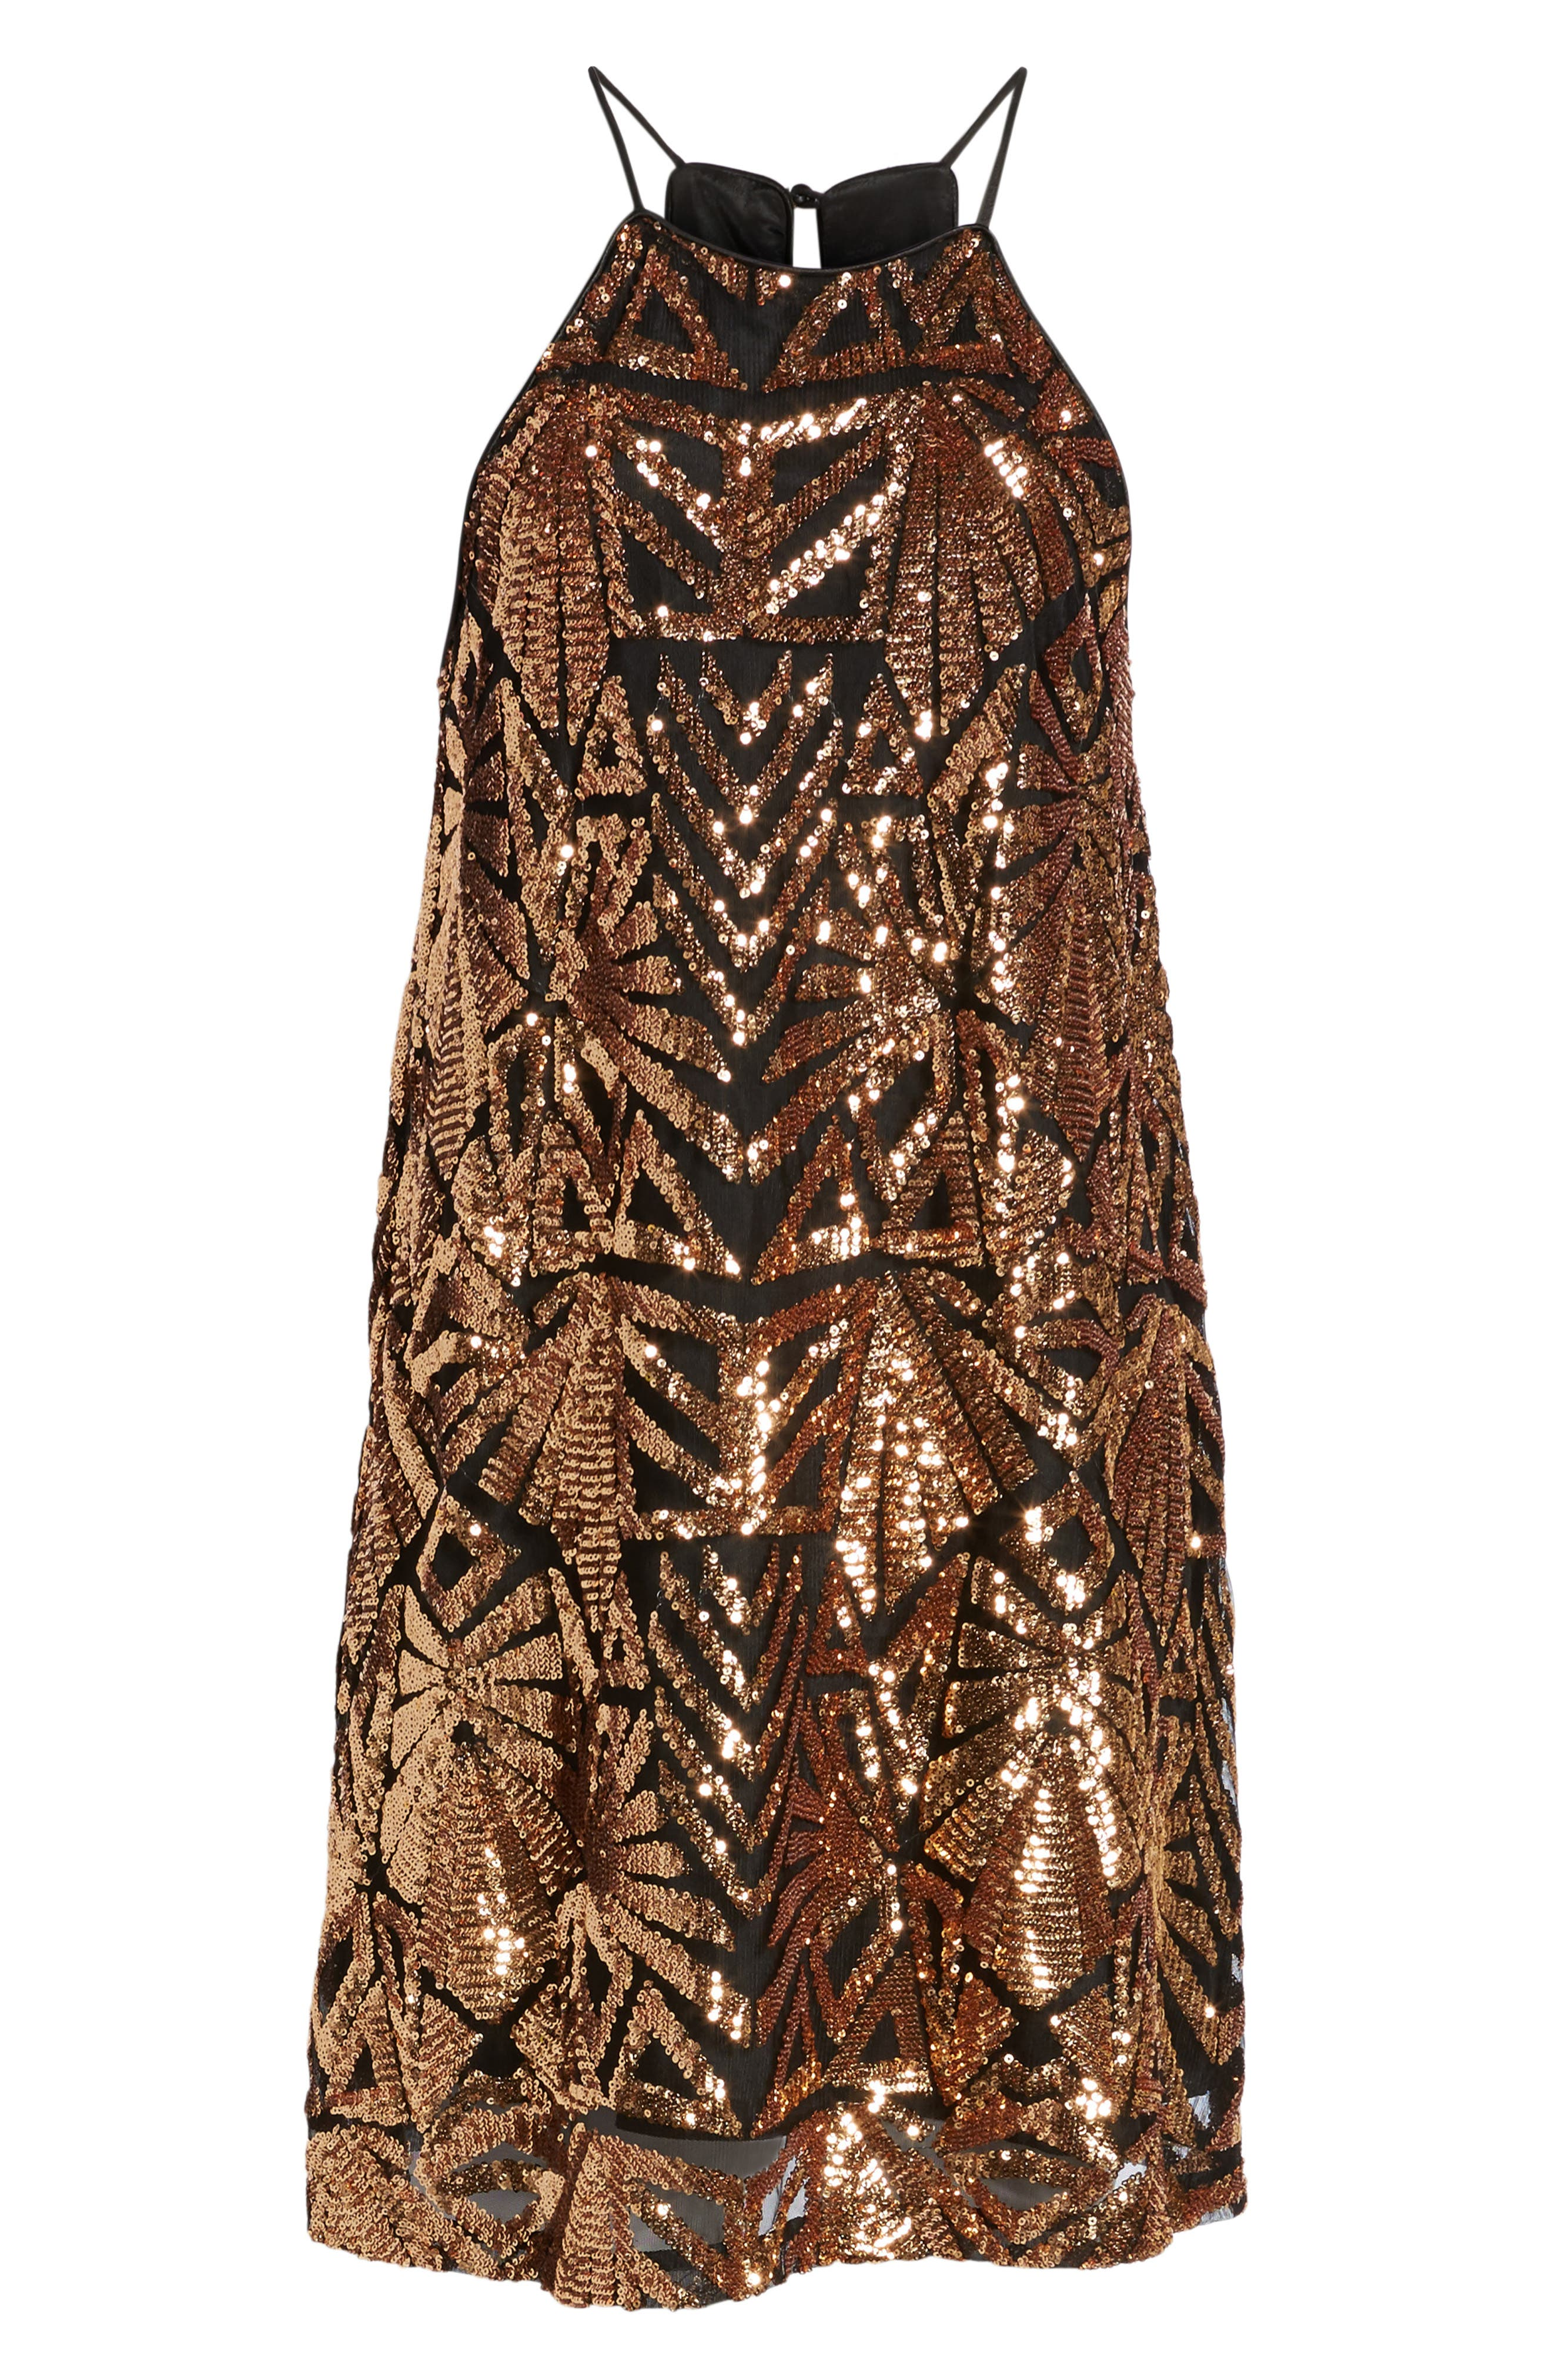 Sequined High Neck Dress,                             Alternate thumbnail 6, color,                             710